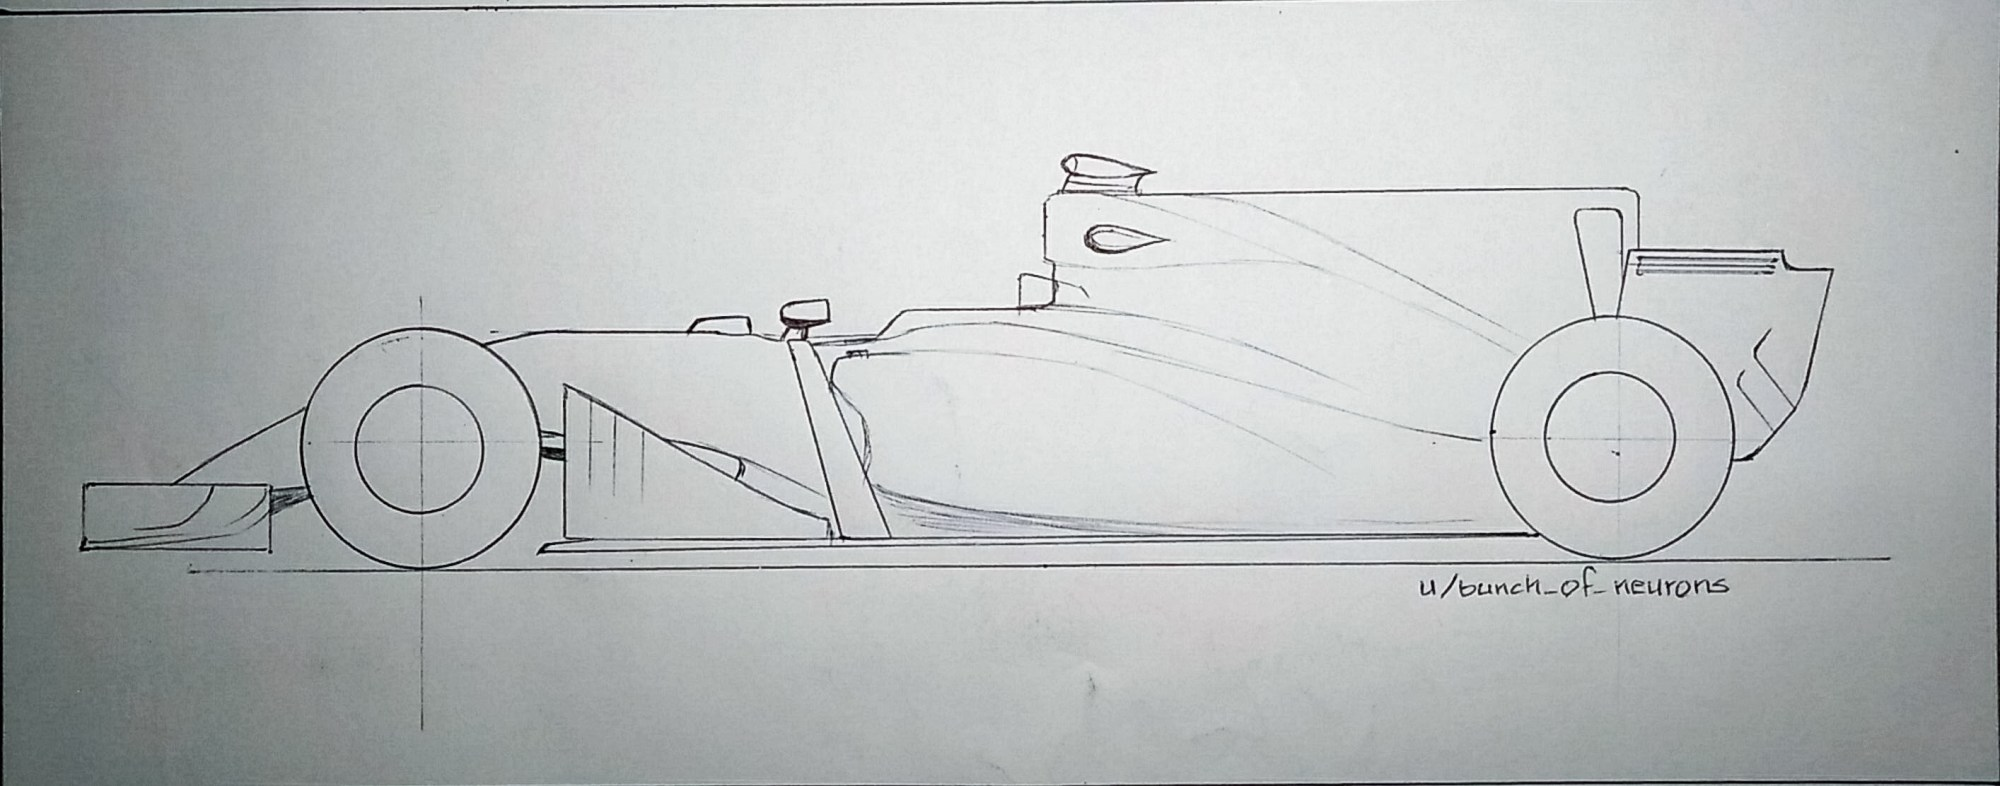 hight resolution of mediaquick drawing 2017 f1 car with shark fin engine cover